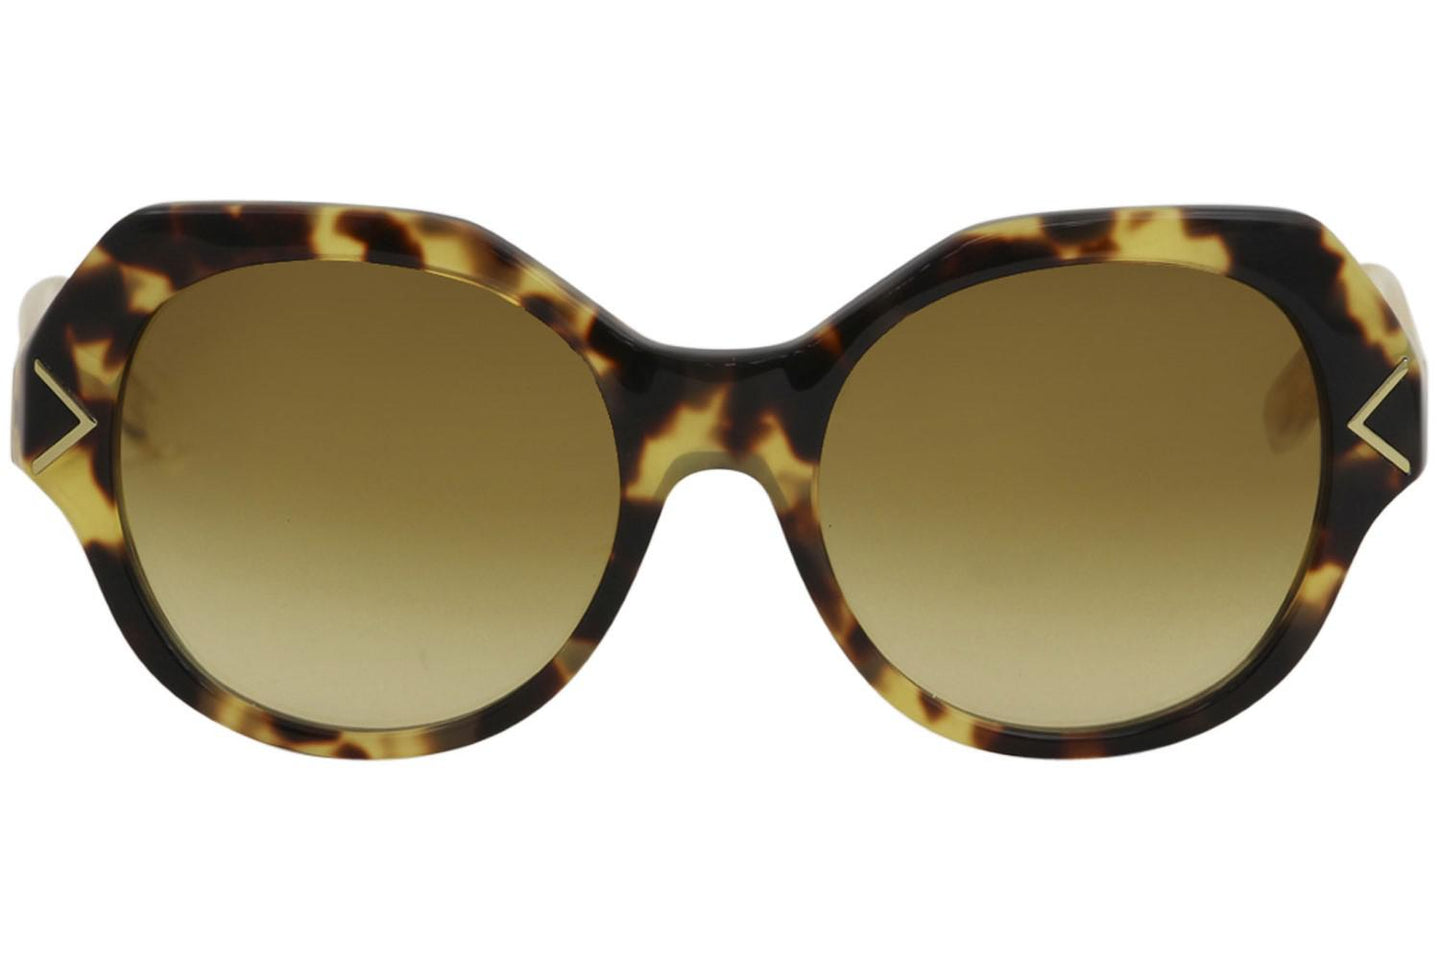 Tory Burch TY 7116 Tortoise / Gold Lens Sunglasses